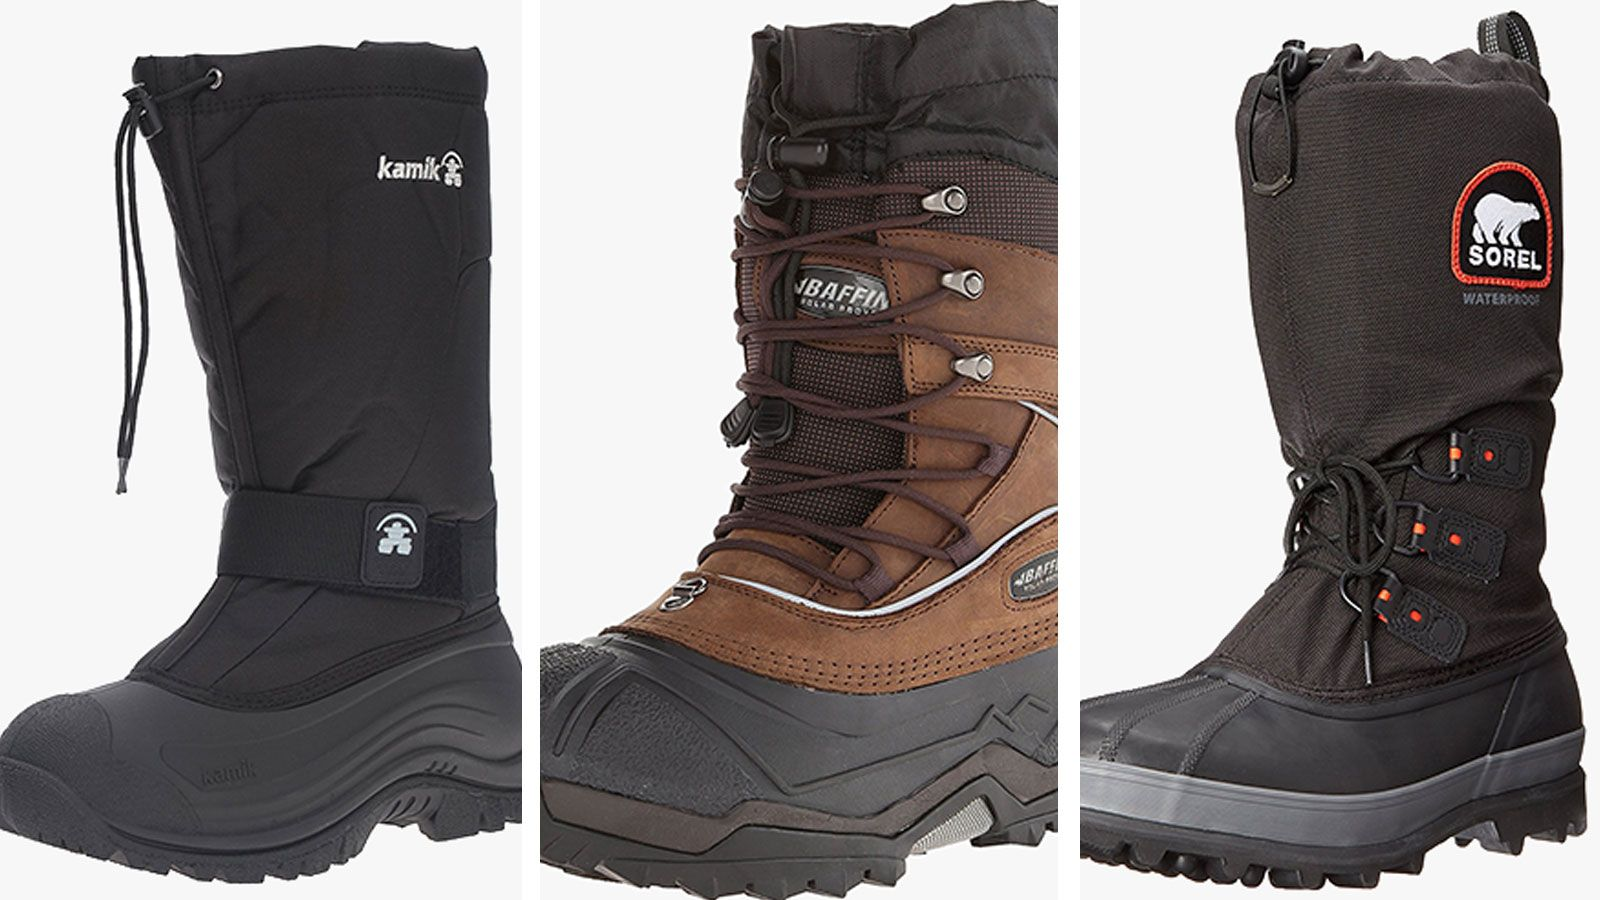 e36182ec9df Warm And Safe: 7 Best Extreme Cold Weather Boots for Men | Men's ...